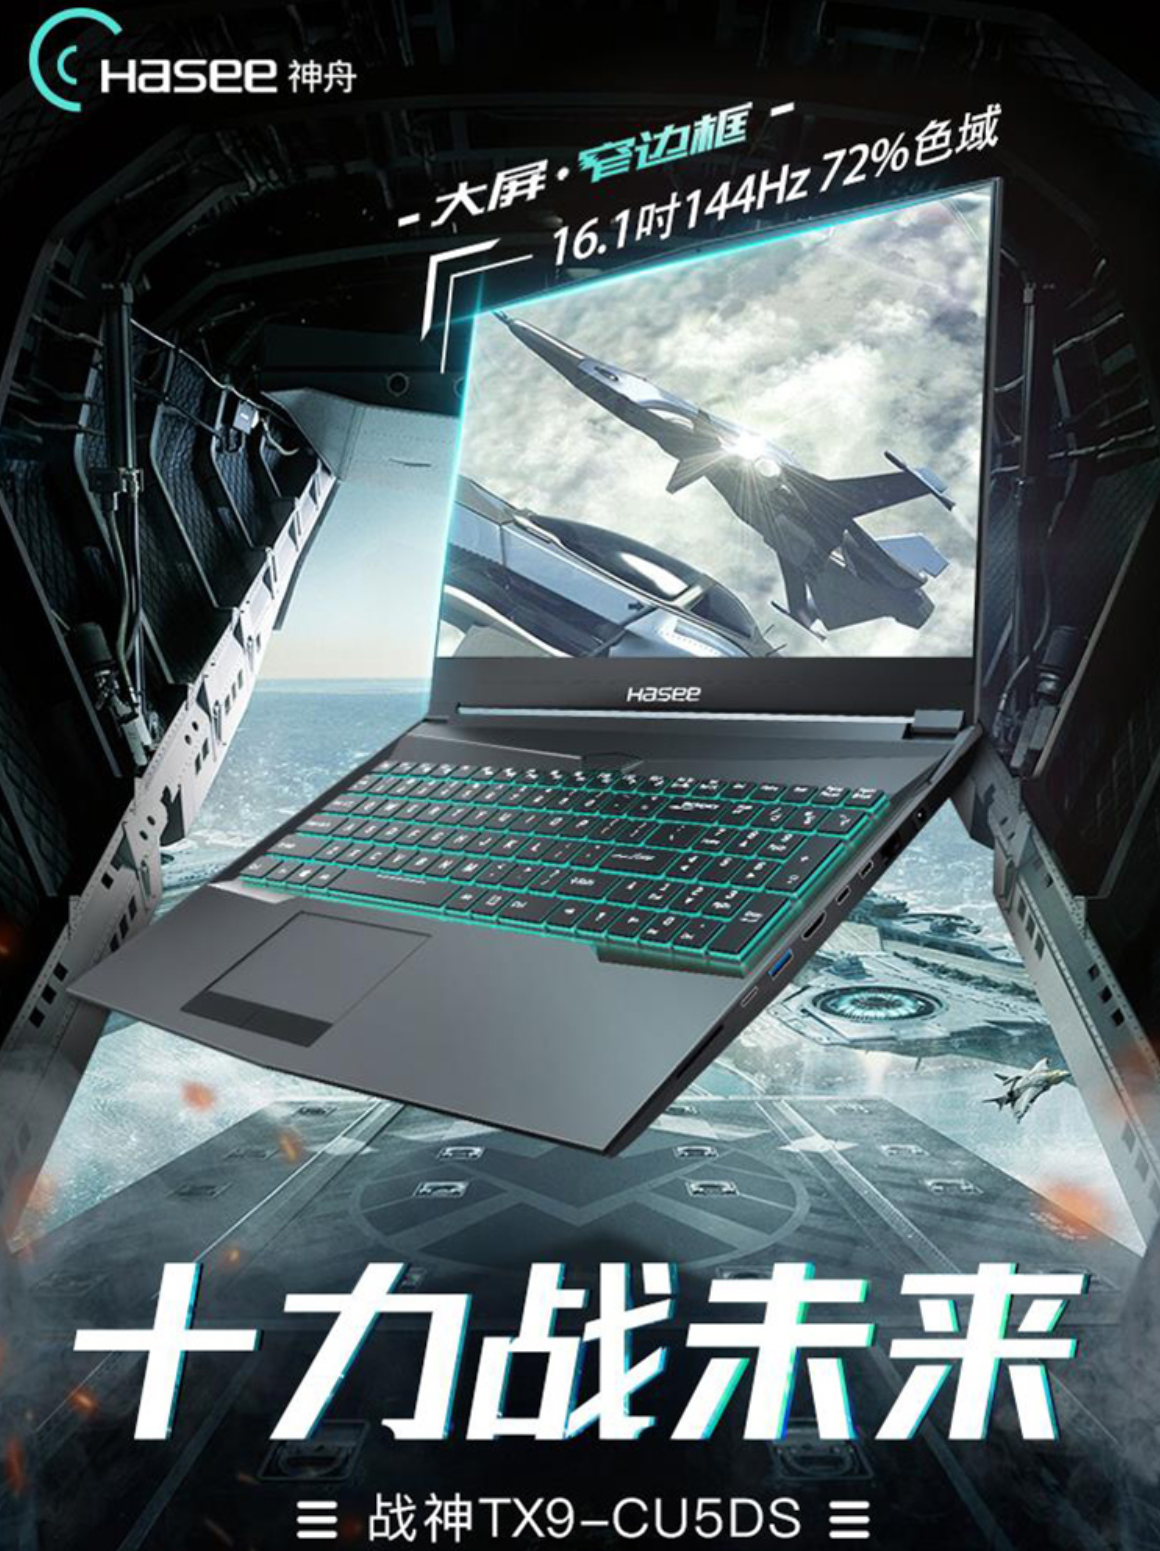 Intel Rocket Lake Desktop CPU & NVIDIA GeForce RTX 30 Mobility GPU Powered Laptops From Chinese Manufacturer, Hasee, Detailed With Pricing